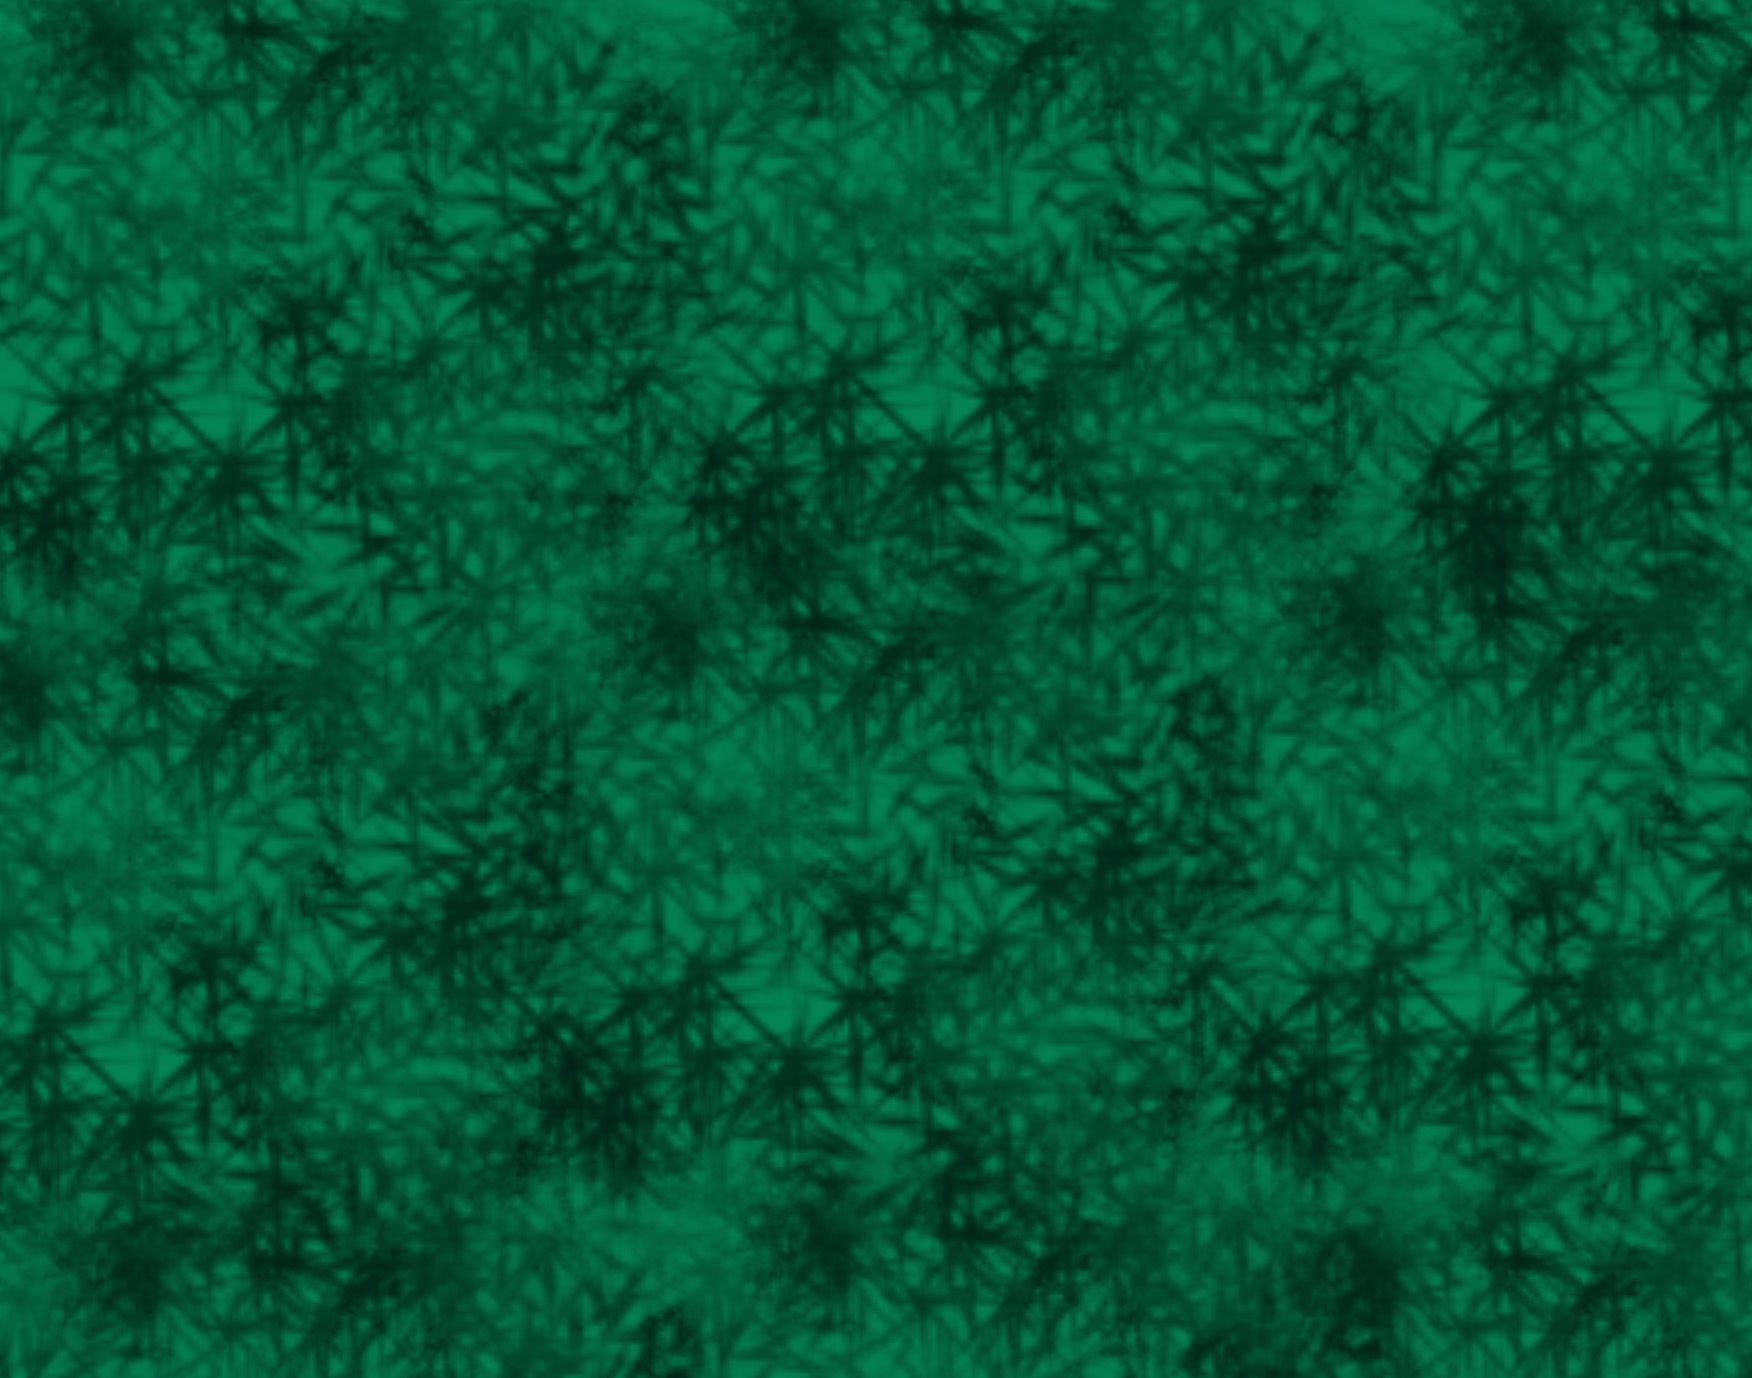 green pattern backgrounds - photo #37